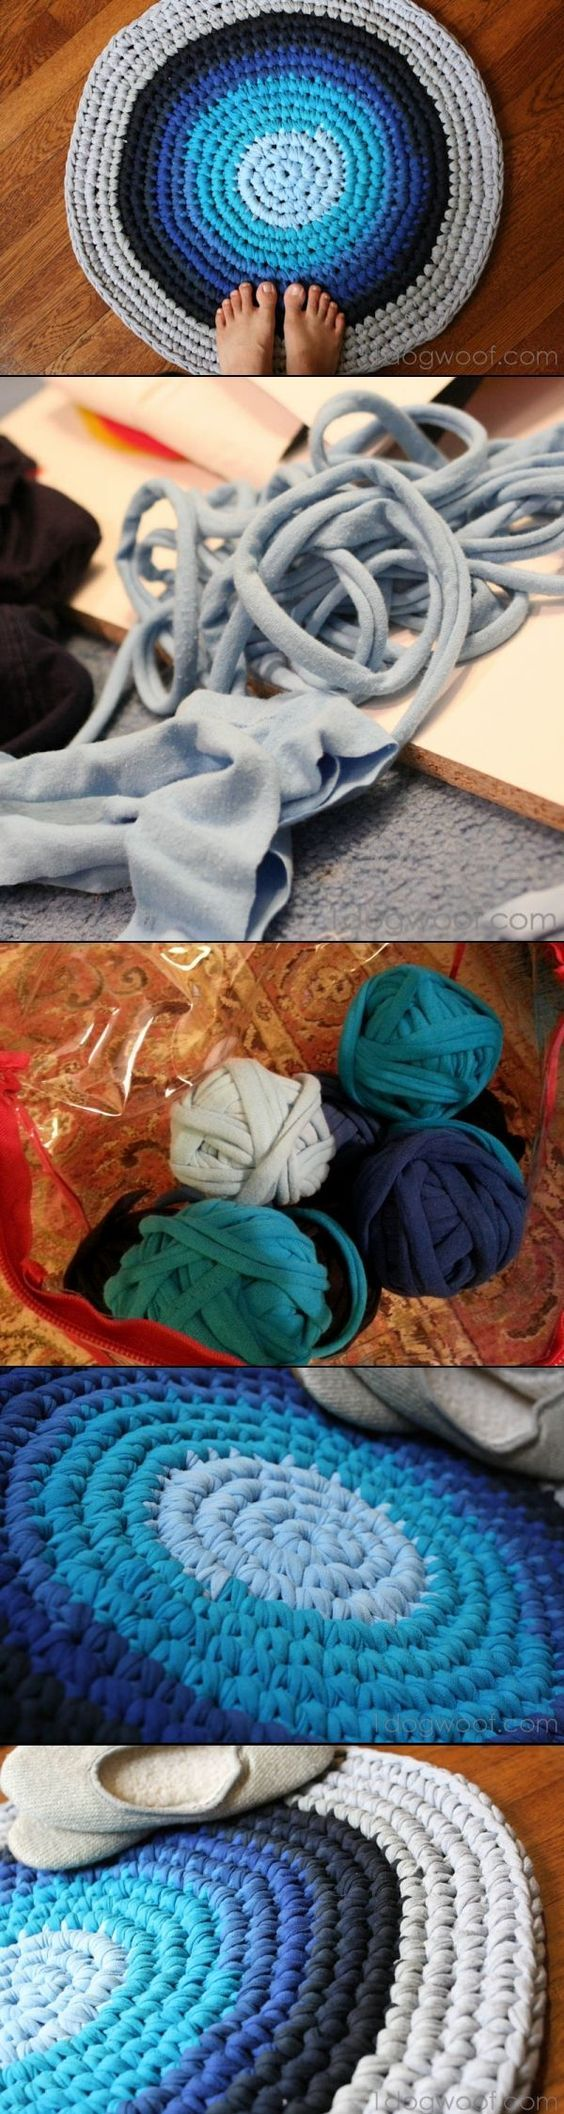 Really nice t-shirt rug. Like the tutorial on adding stitches after every pass. Beautiful.: